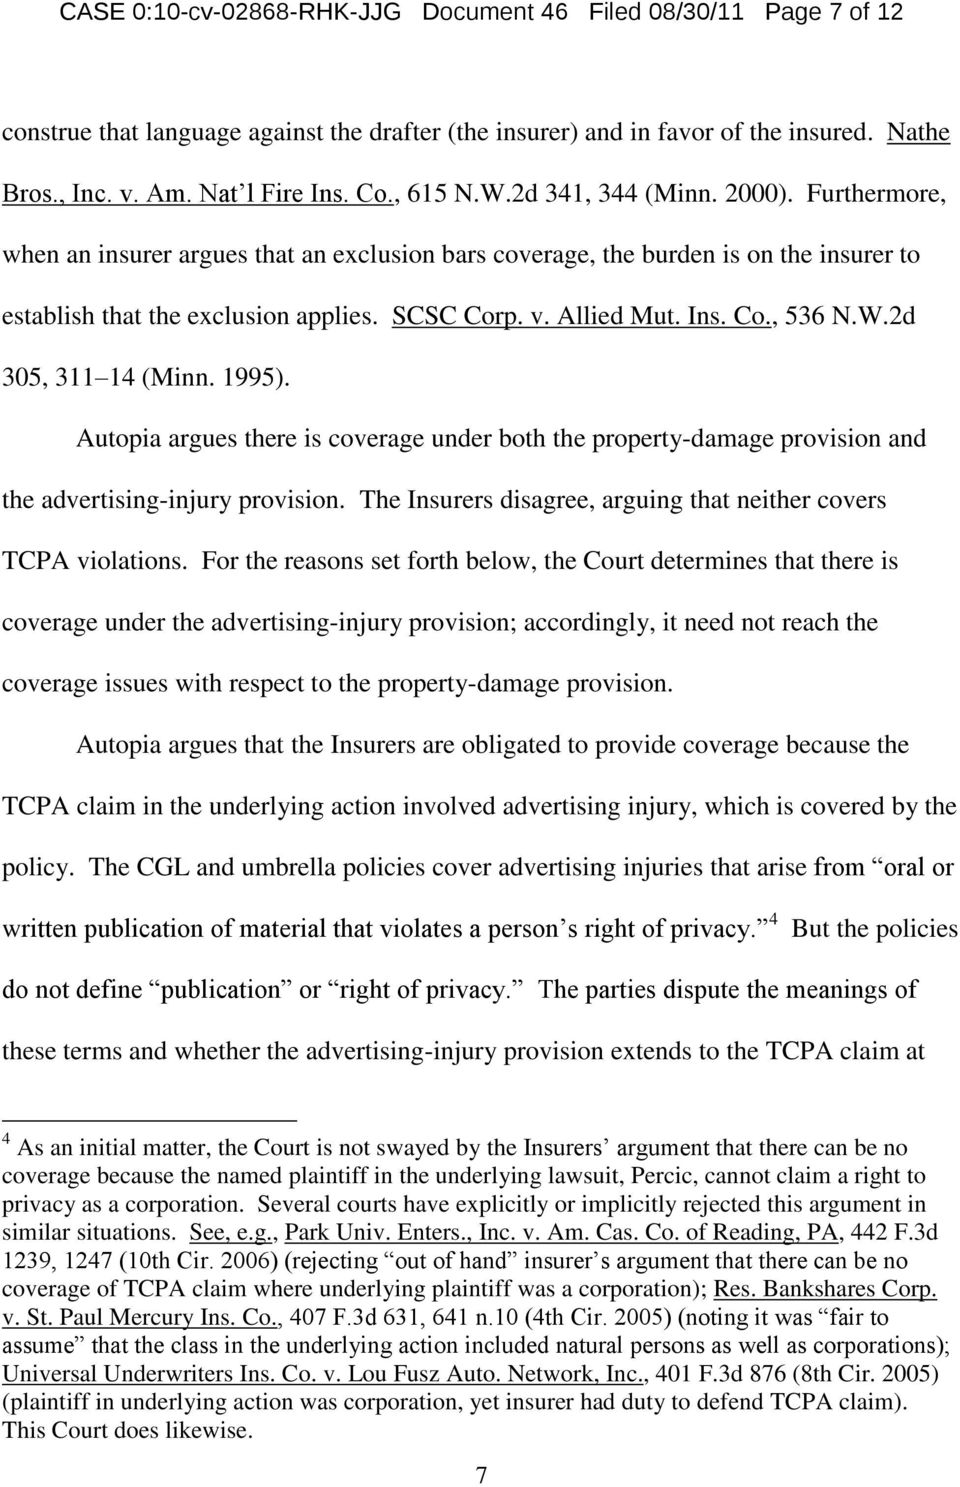 Ins. Co., 536 N.W.2d 305, 311 14 (Minn. 1995). Autopia argues there is coverage under both the property-damage provision and the advertising-injury provision.